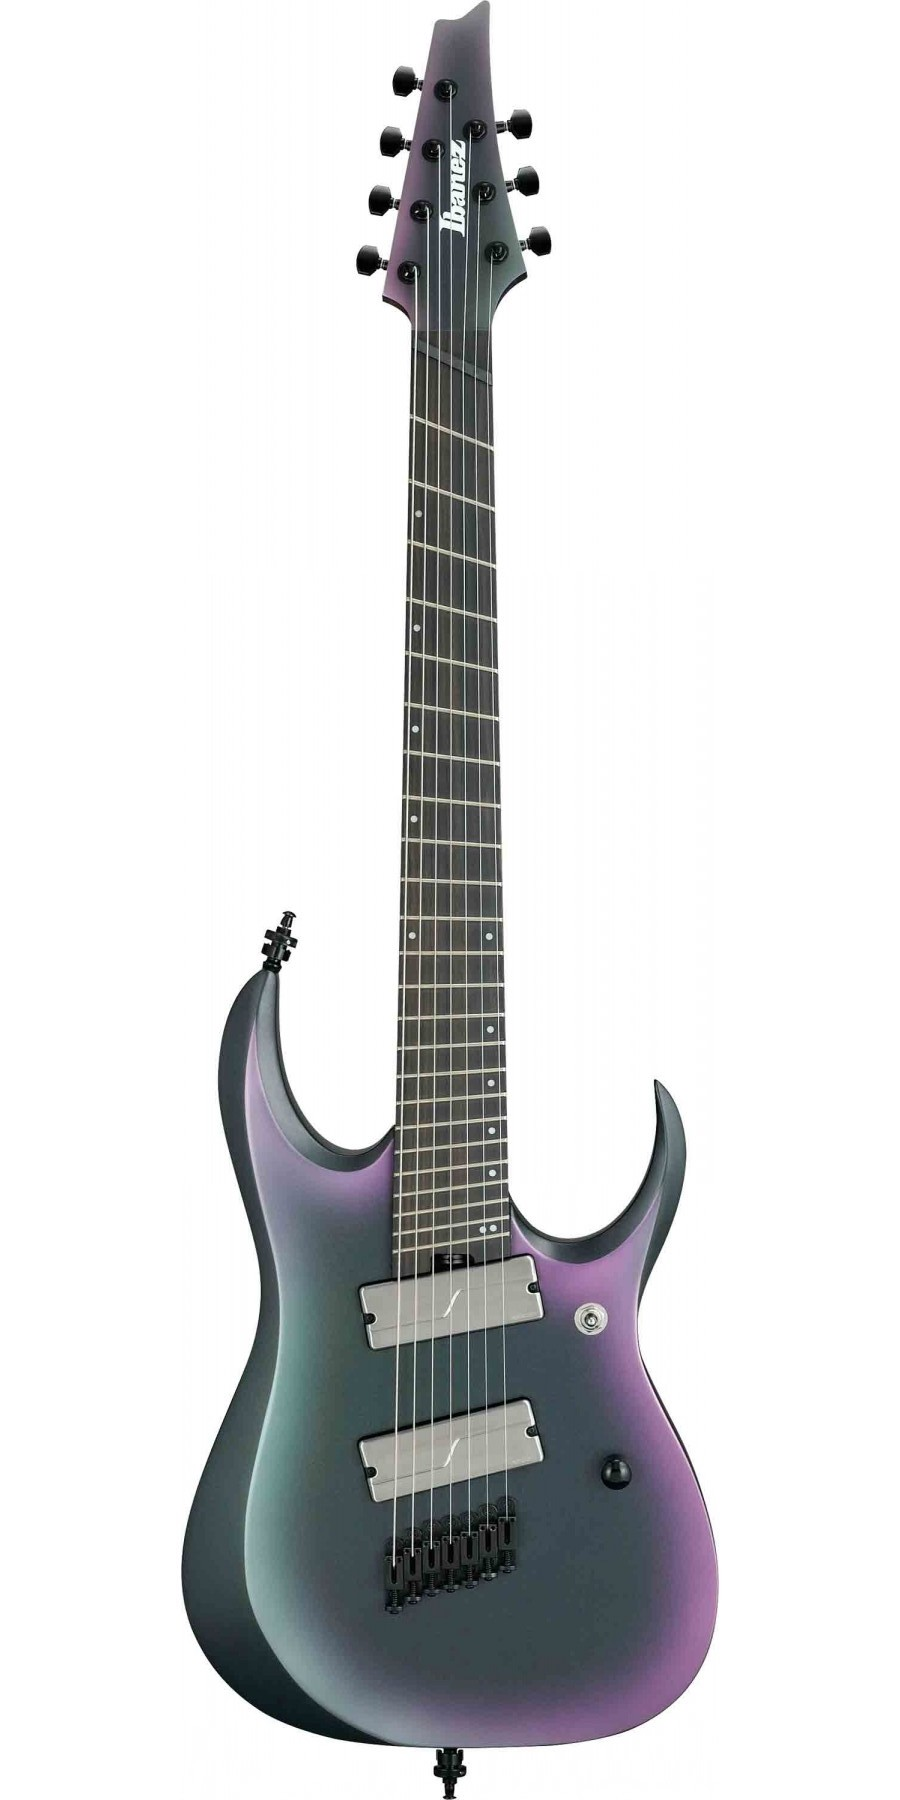 Chance of an 8 string version of ibanez RGD71ALMS releasing?-ibanez-rgd71alms-bam-axion-label-black-aurora-burst-matte-front_1568564539665-jpg